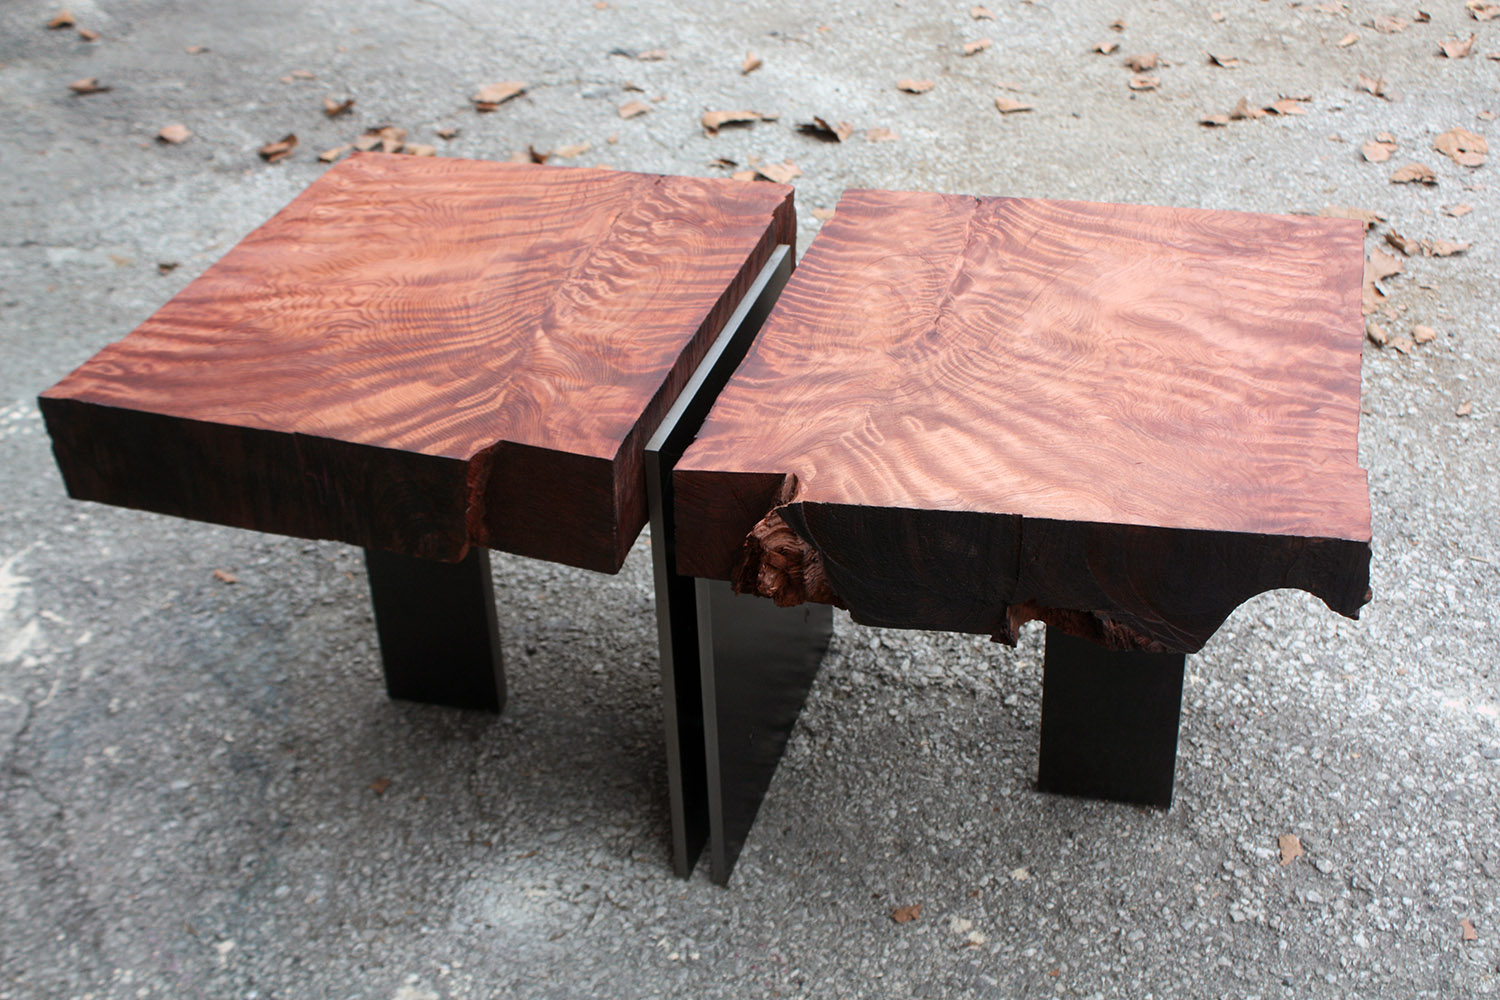 """Materials: Book Matched Redwood and Steel   Slab Thickness: 3.25""""   Size (LxWxH): 20""""x33.25""""x15.25""""   Weight: 98 lbs."""